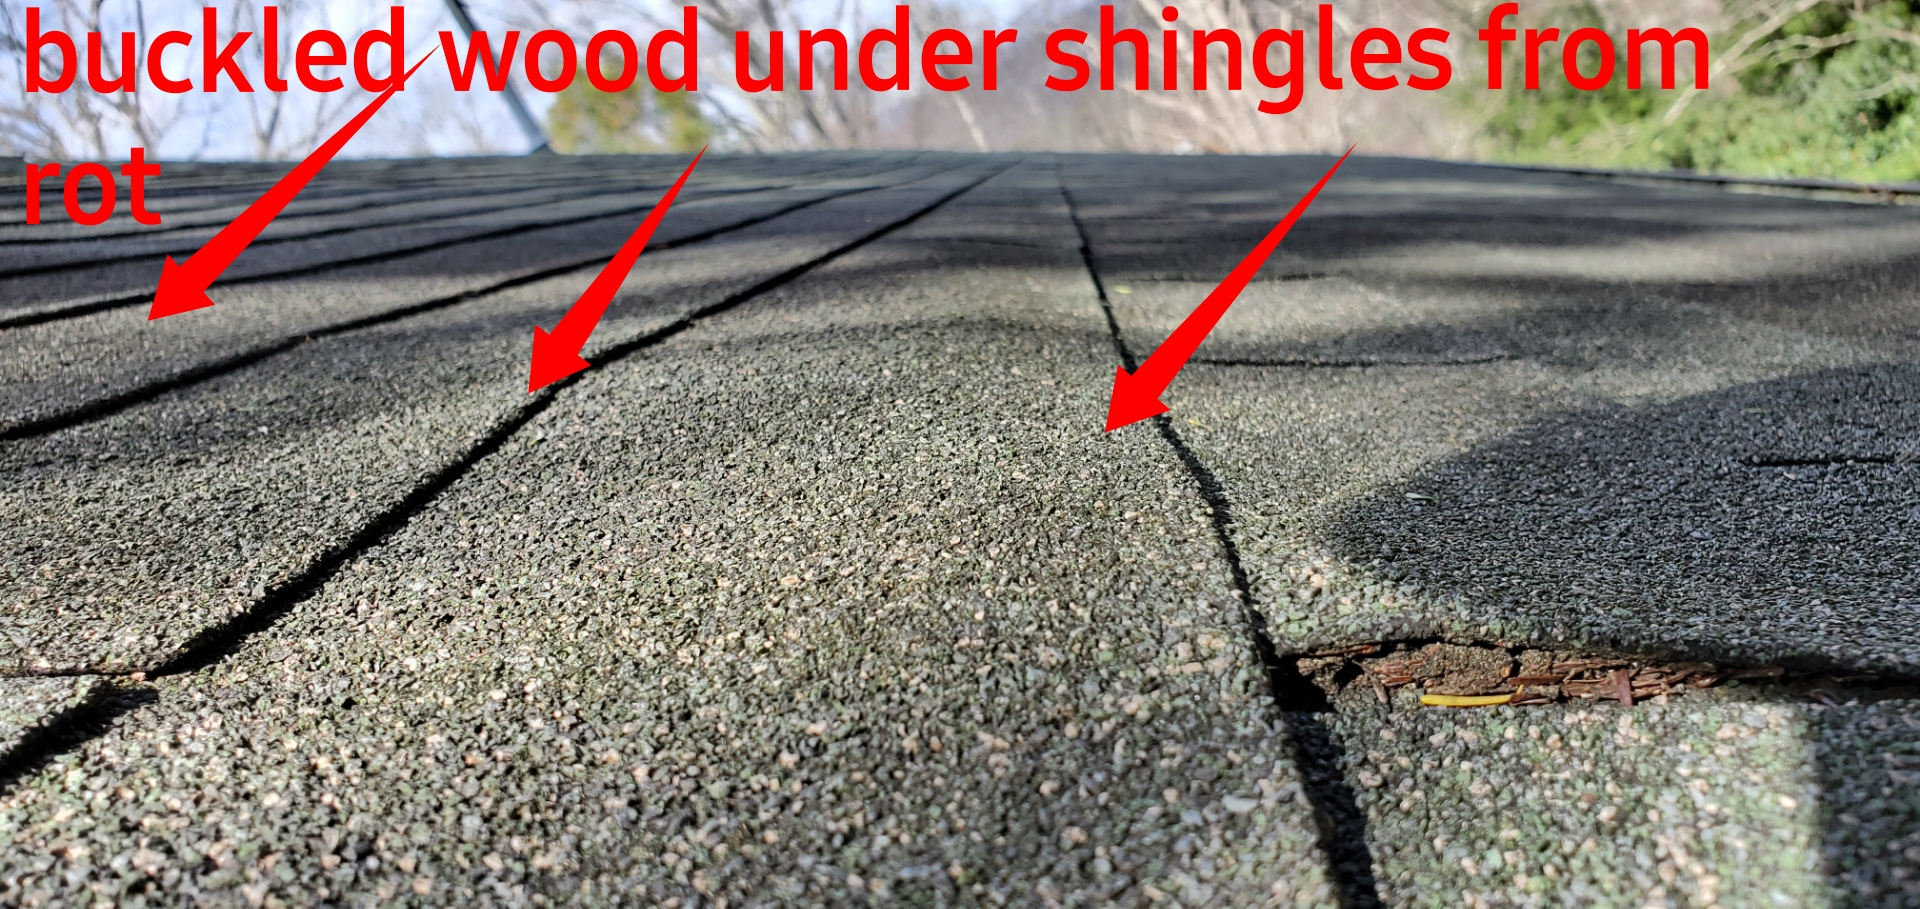 Buckled Wood under shingles